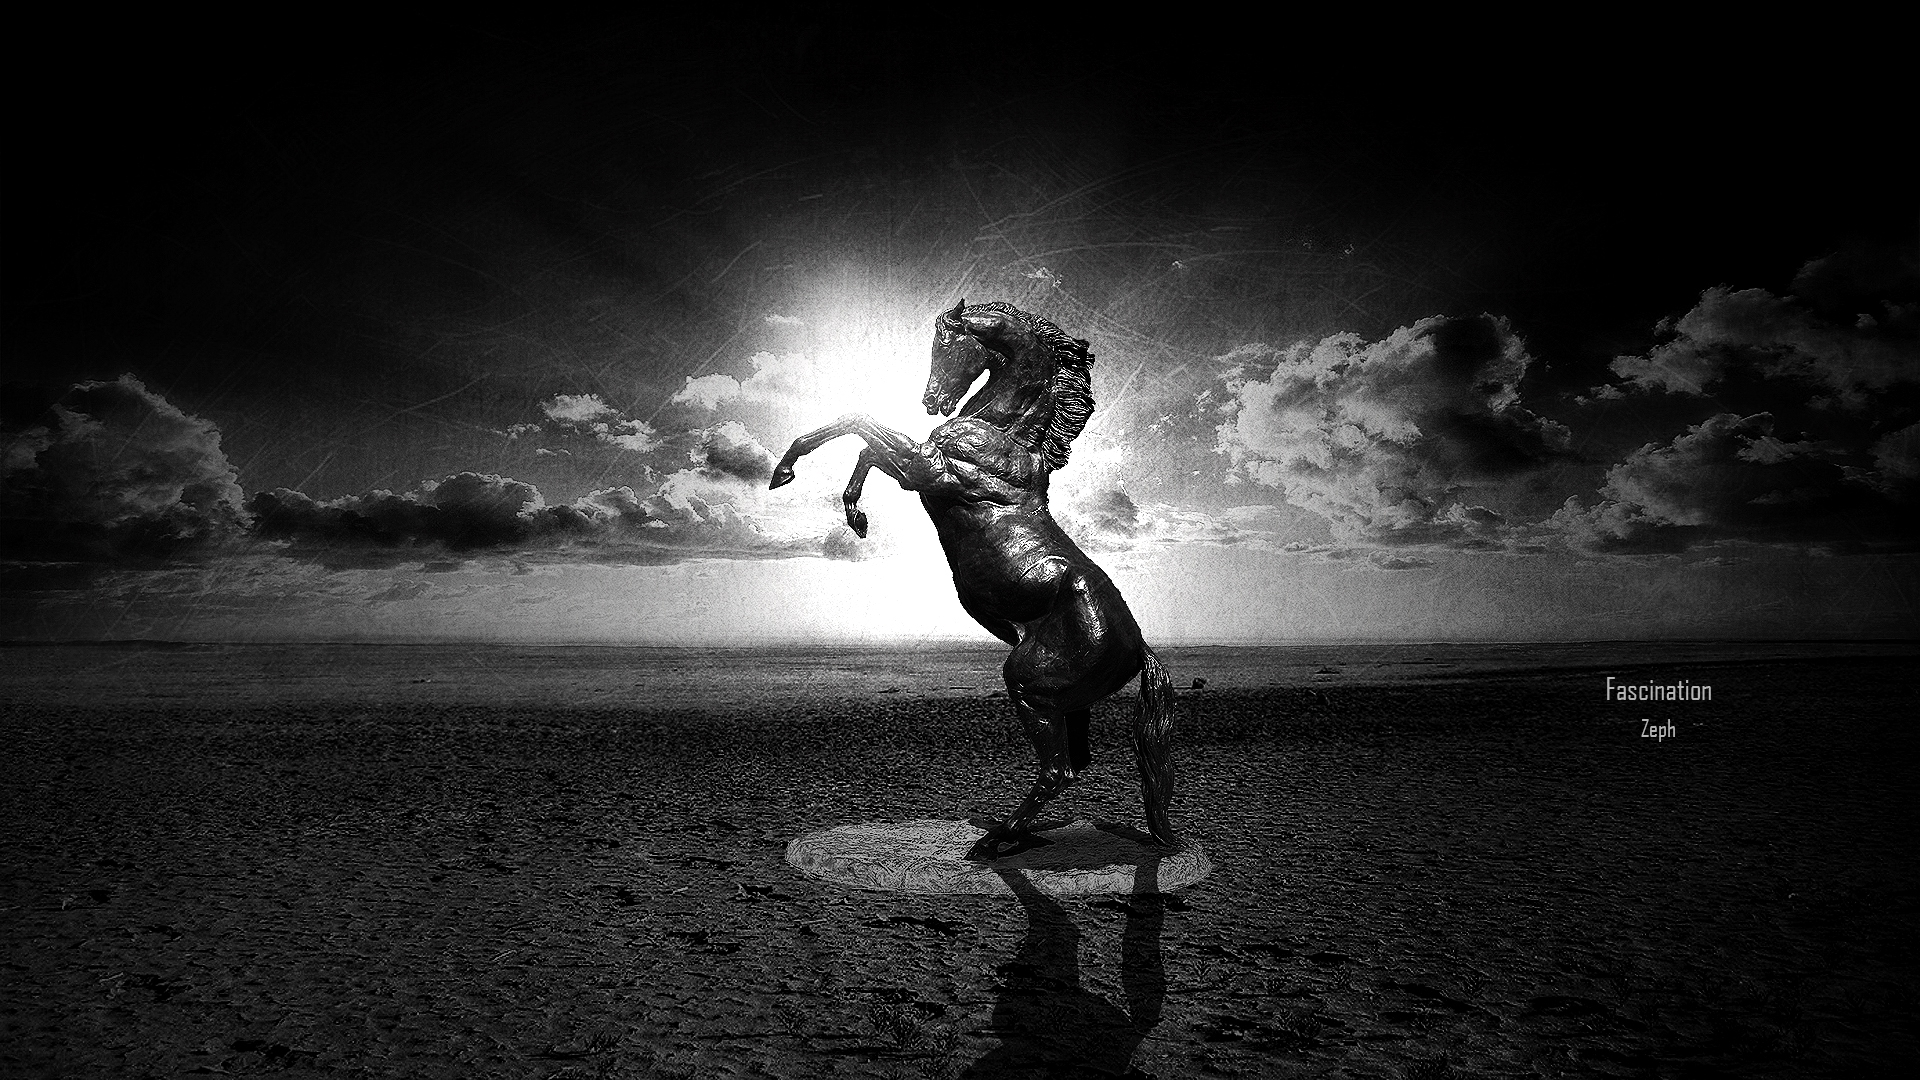 full hd black and white wallpaper,water,black,black and white,sky,monochrome photography